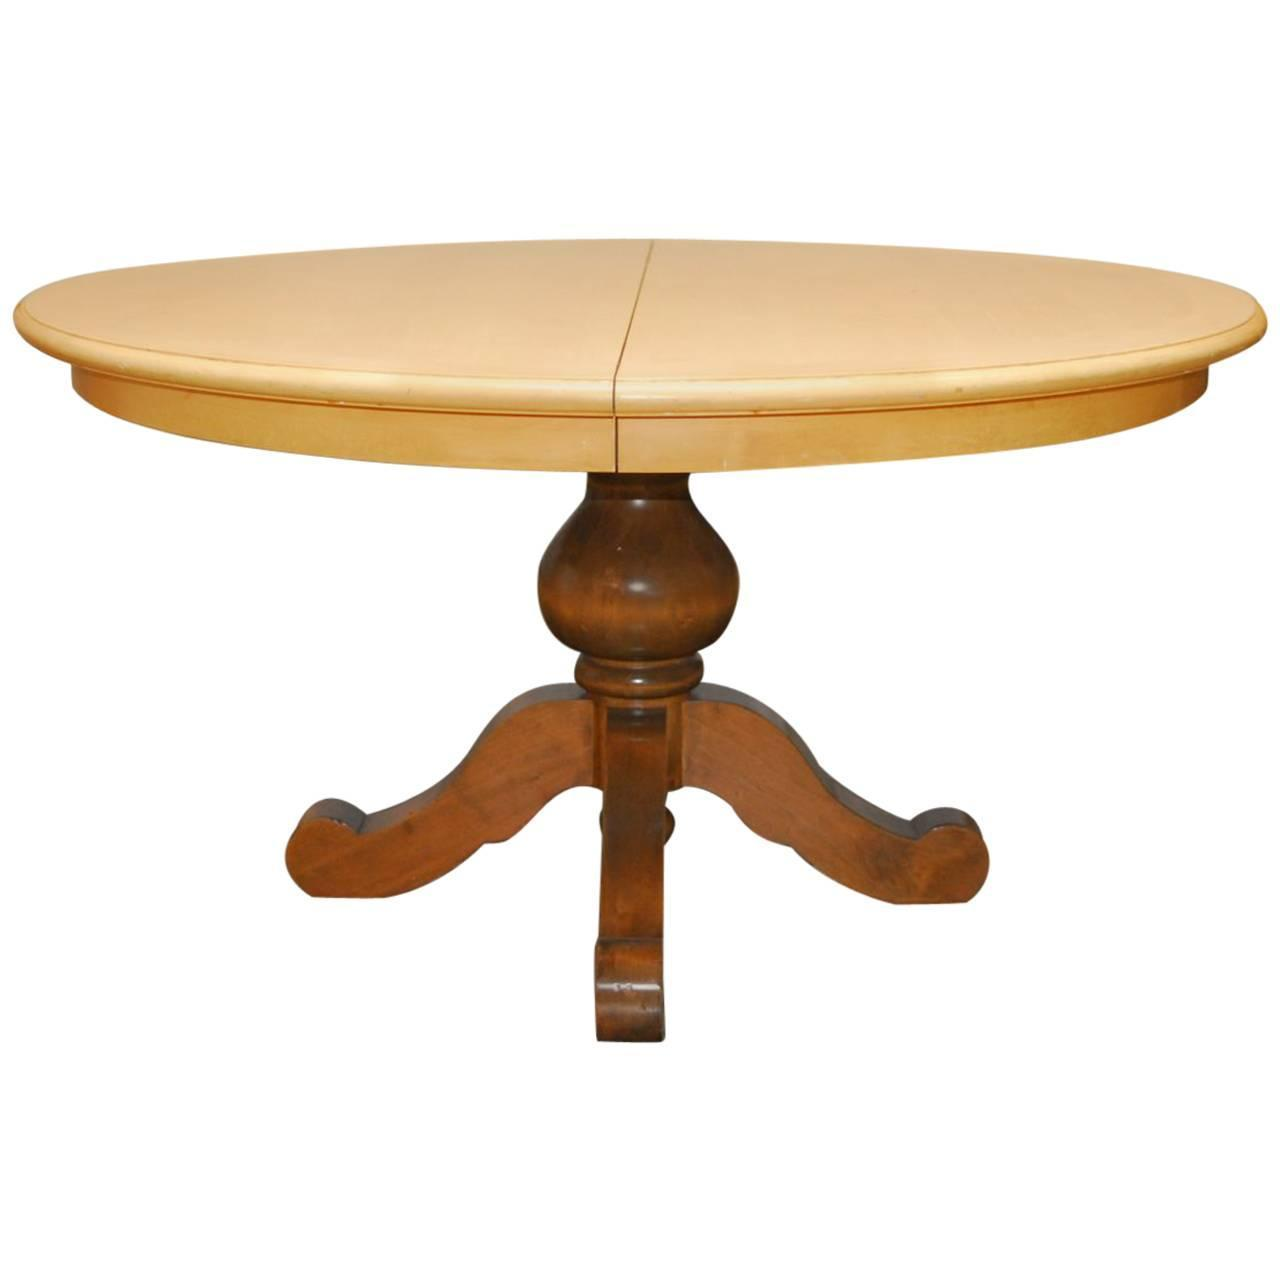 Round pedestal dining table for sale at 1stdibs for Round dining room tables for sale